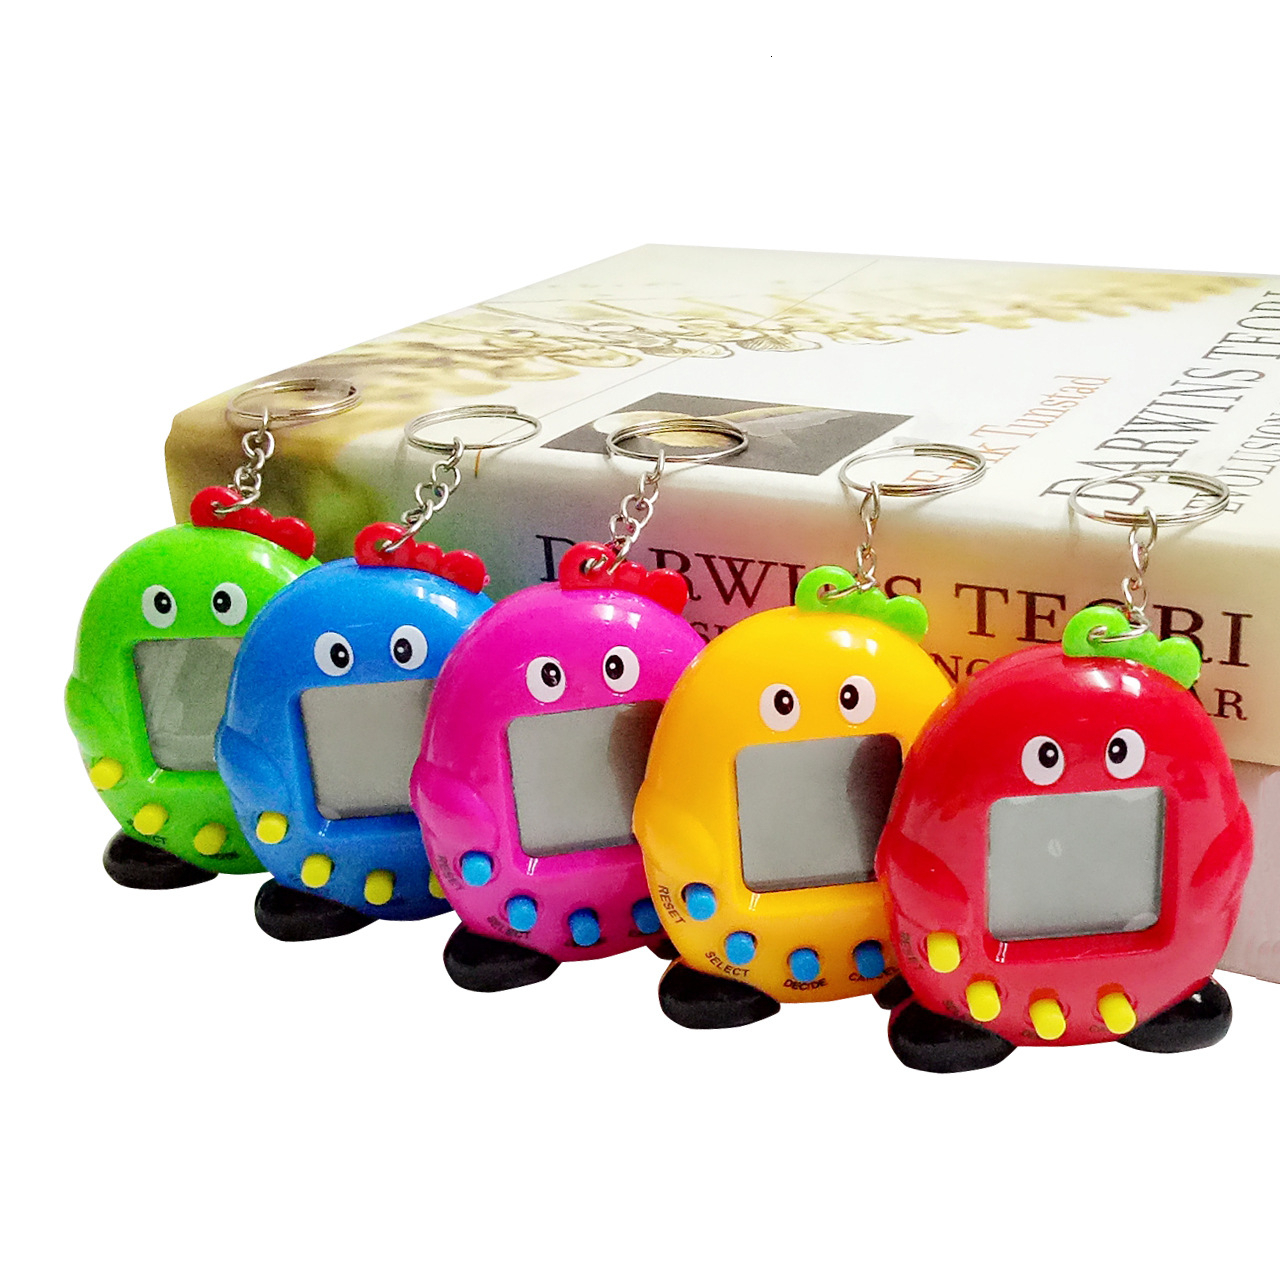 Hot! Tamagotchi Electronic Interactive Pets Toys Forkids 90S Nostalgic 49 Pets In One Virtual Cyber Pet Toy Funny Robot